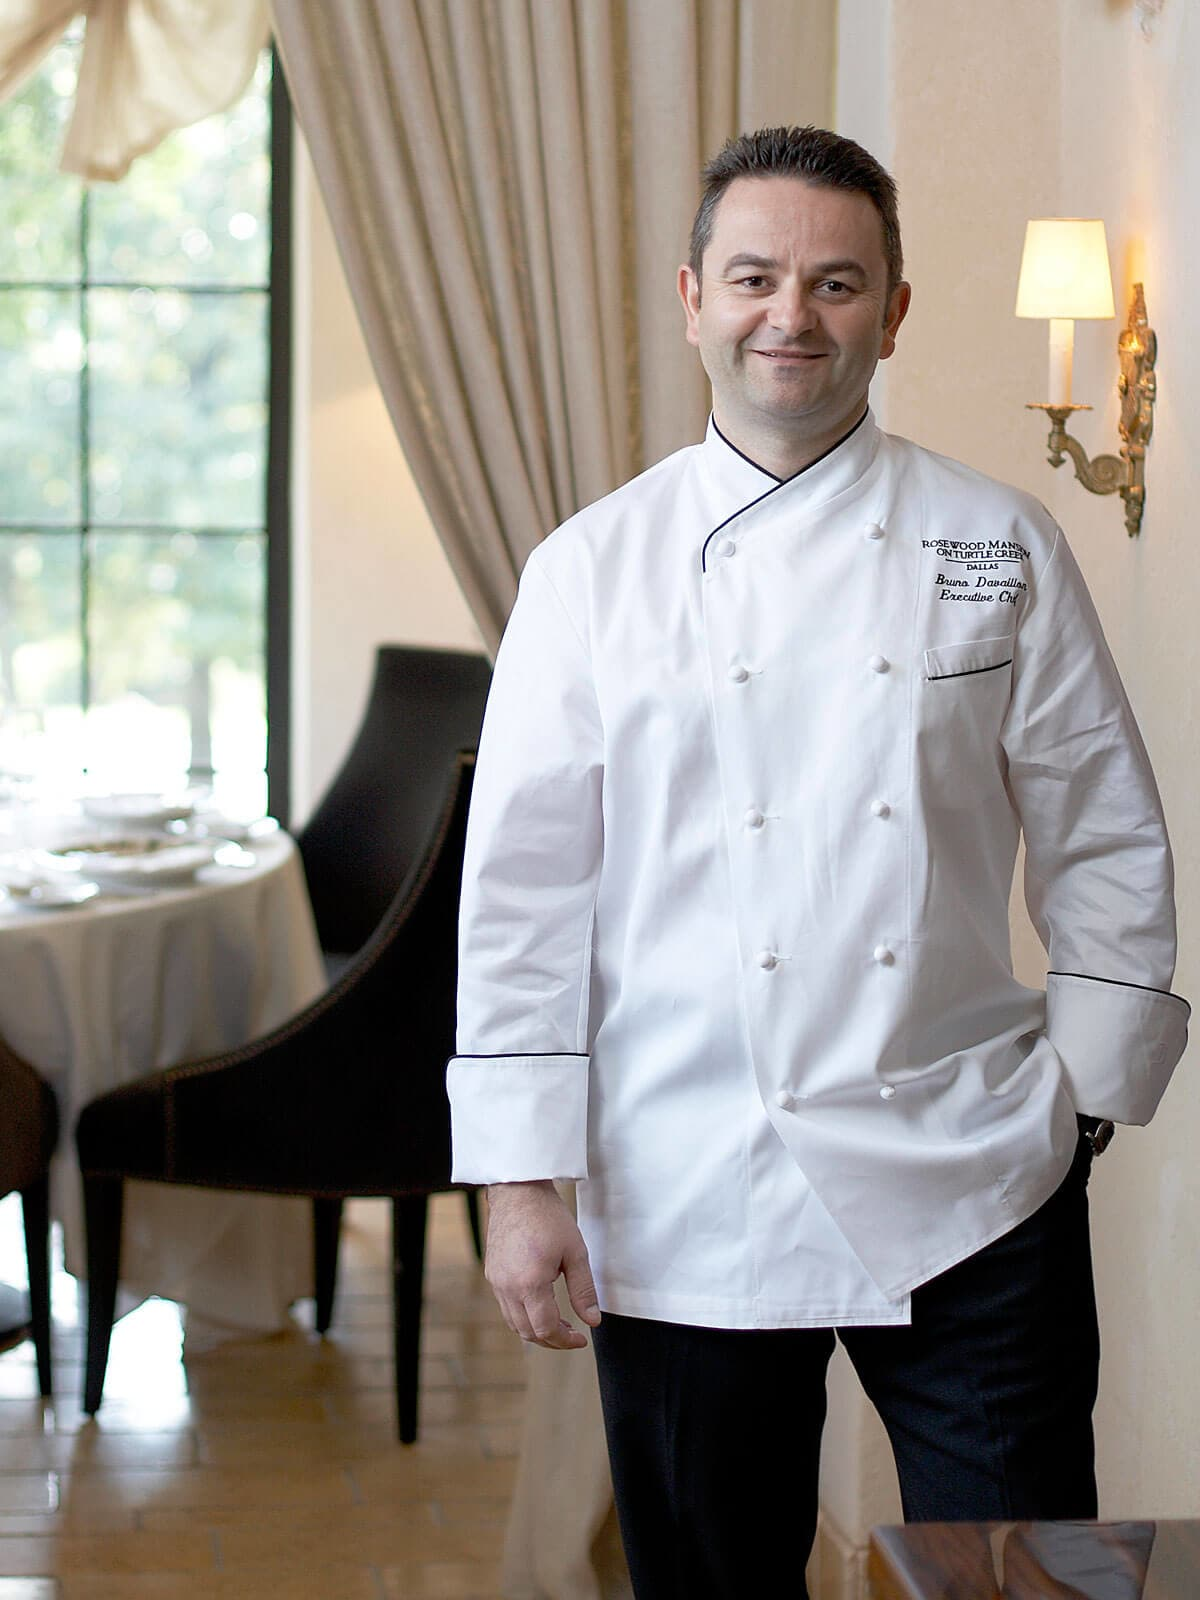 Chef Bruno Davaillon from Rosewood Manion on Turtle Creek